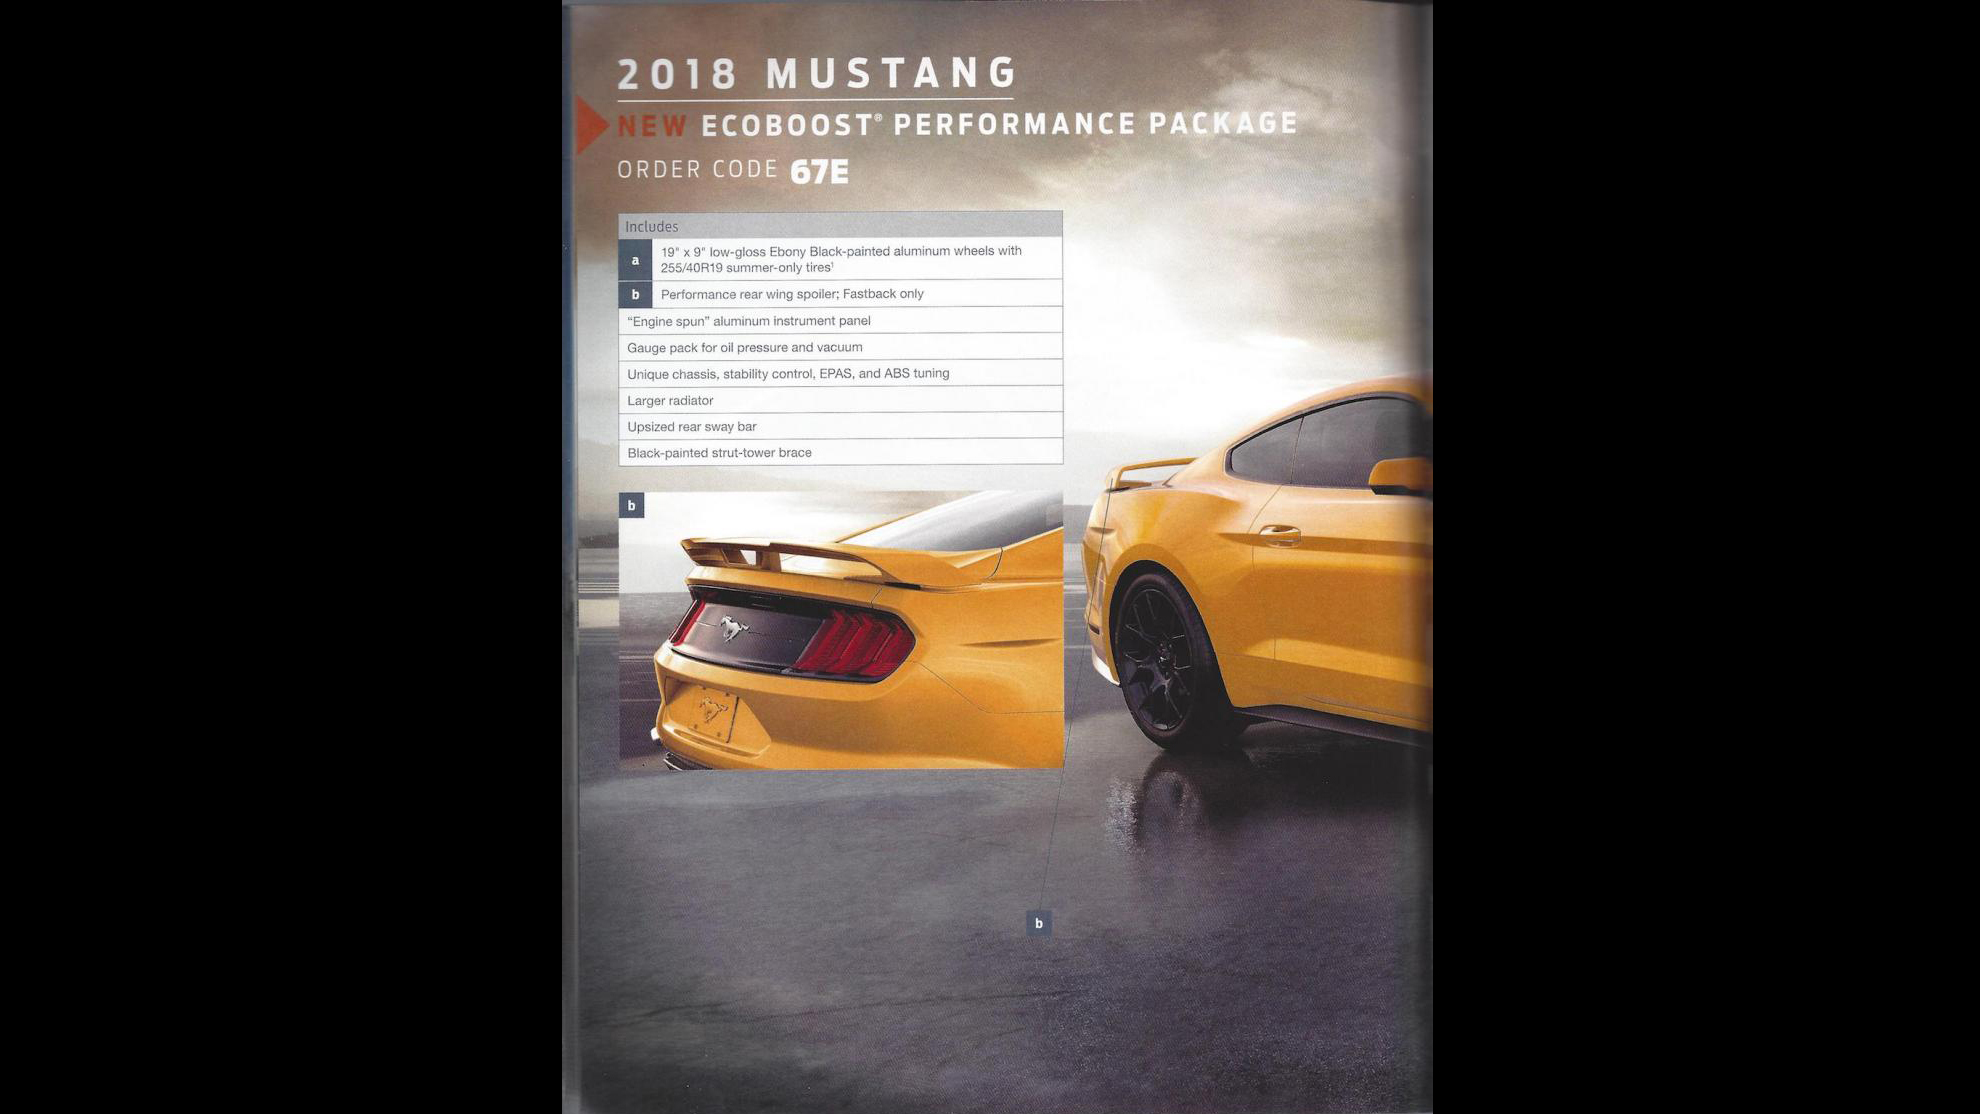 Ford Mustang 2018 Order Guide (1)